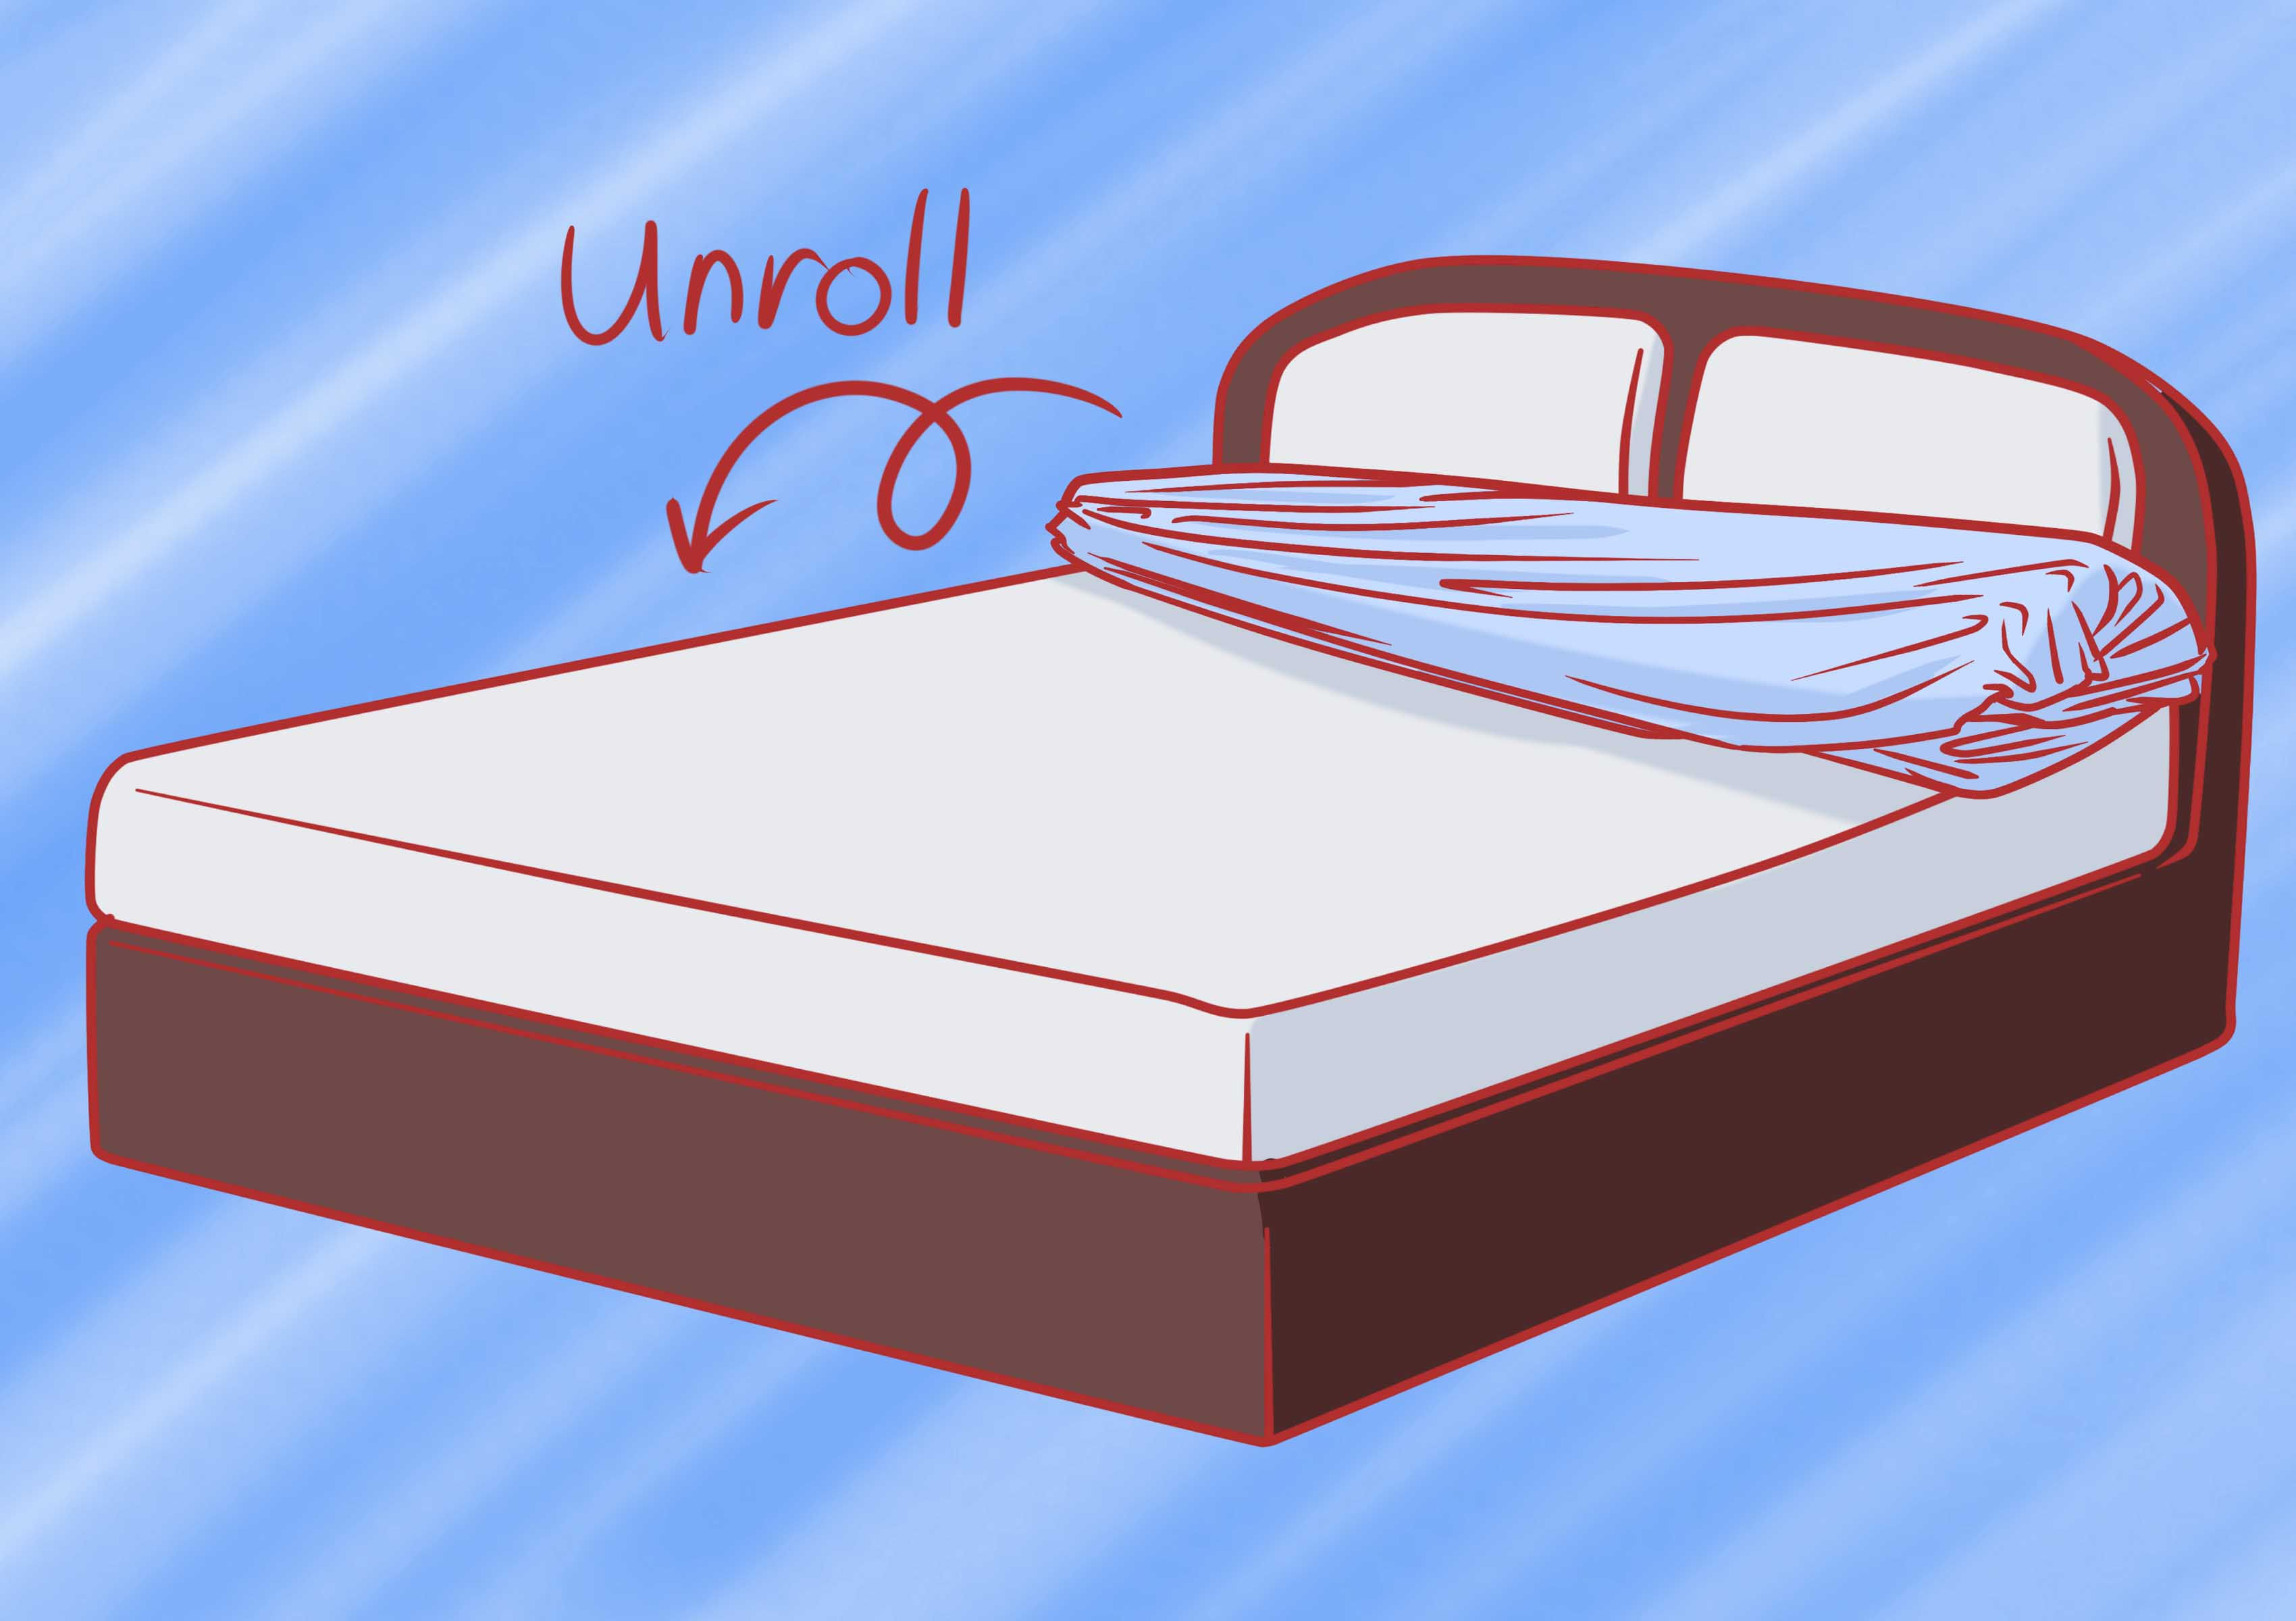 Change bed sheets clipart clip art freeuse library How to Change a Duvet Cover: 11 Steps (with Pictures) - wikiHow clip art freeuse library